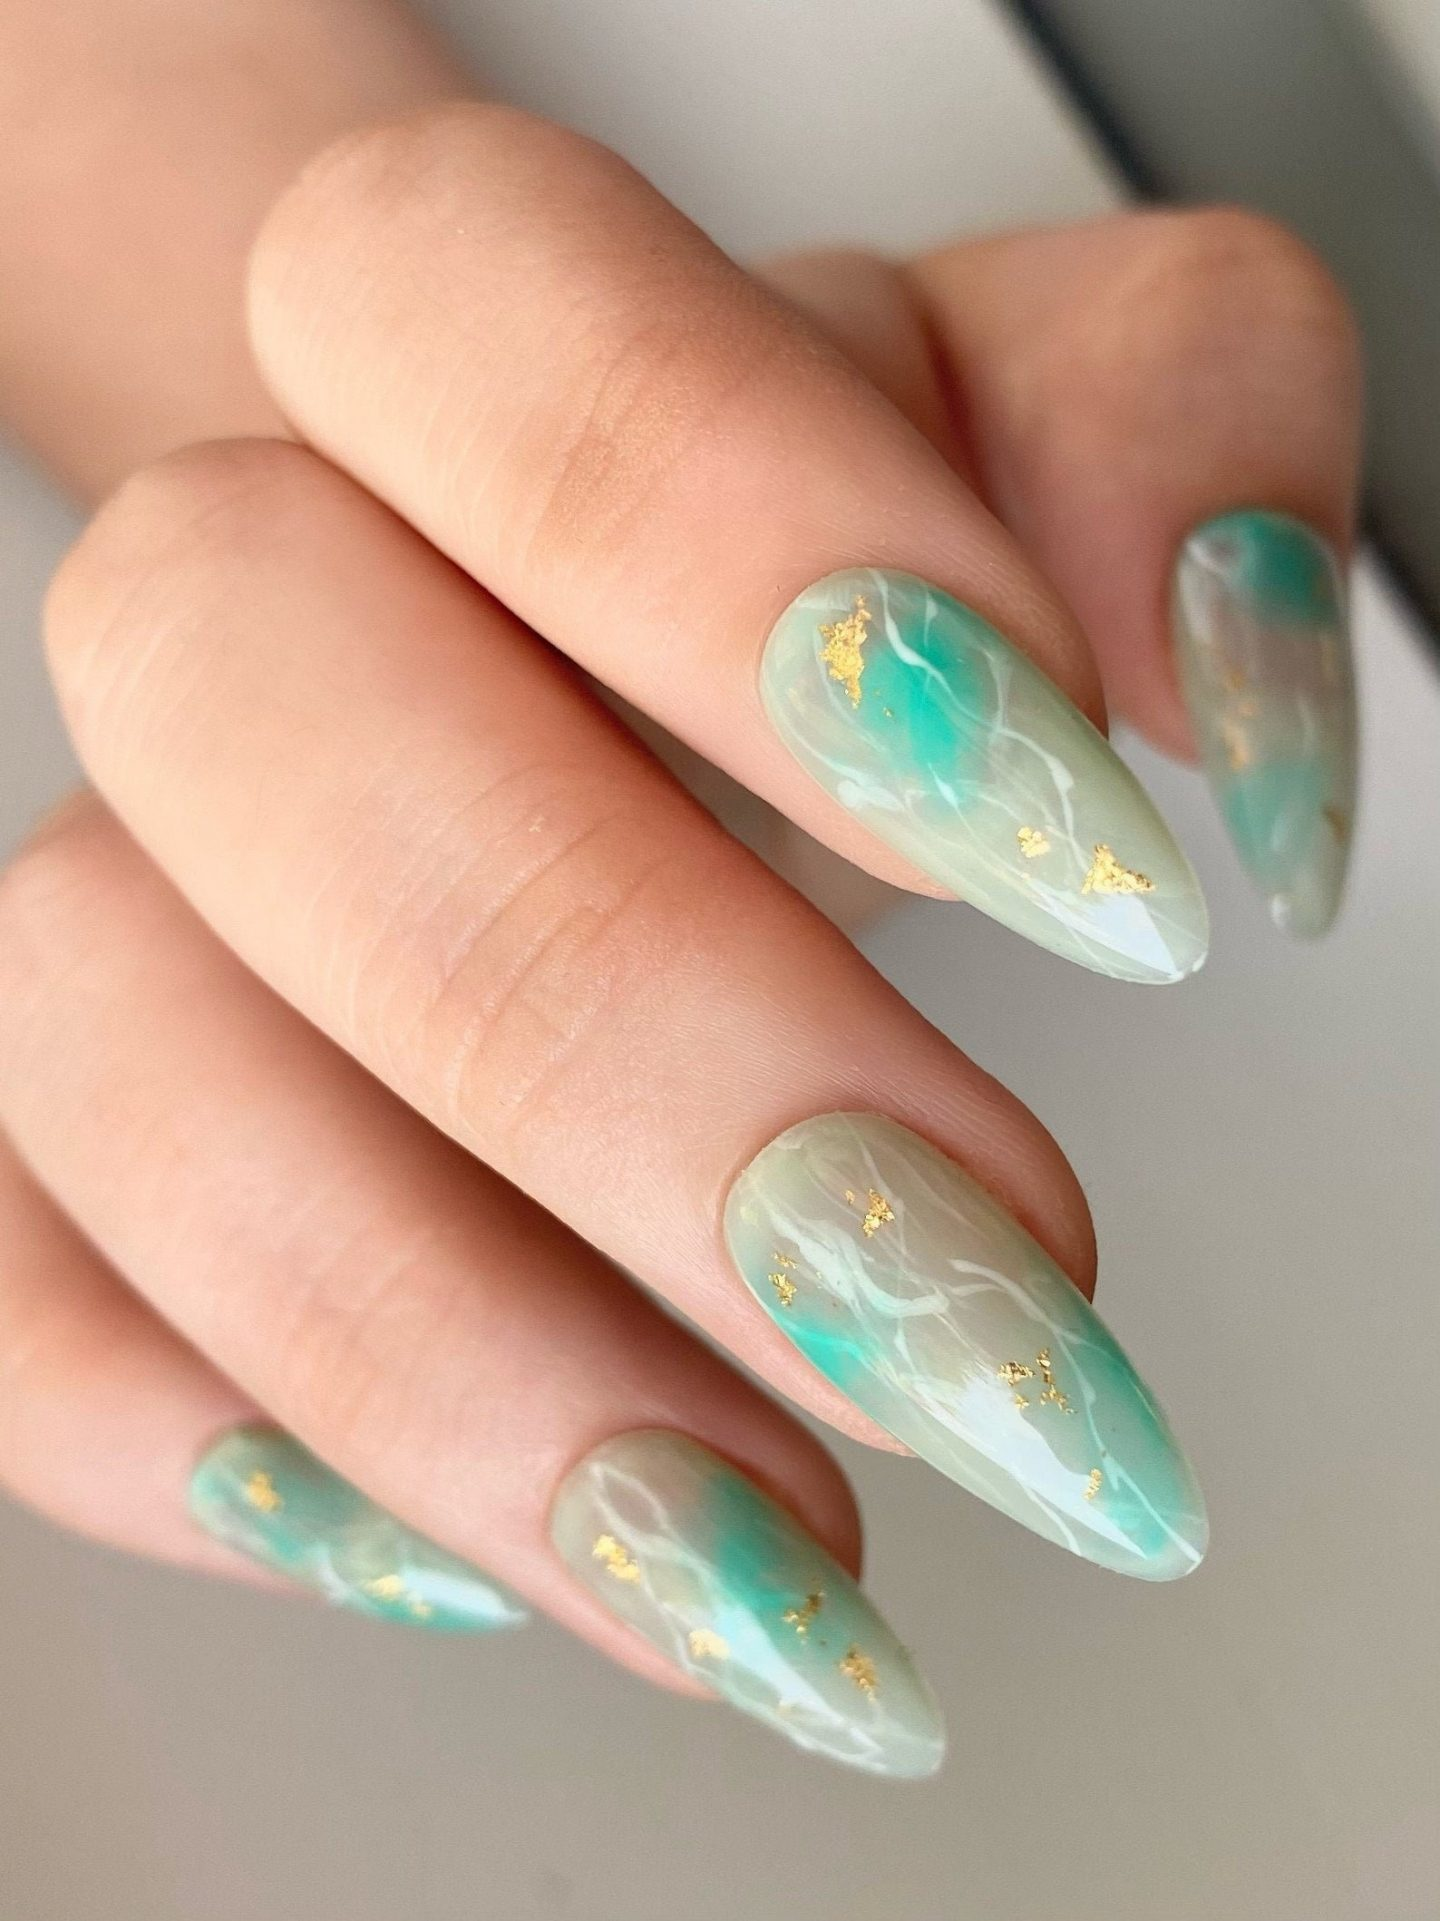 Jade green gemstone nails with gold foil